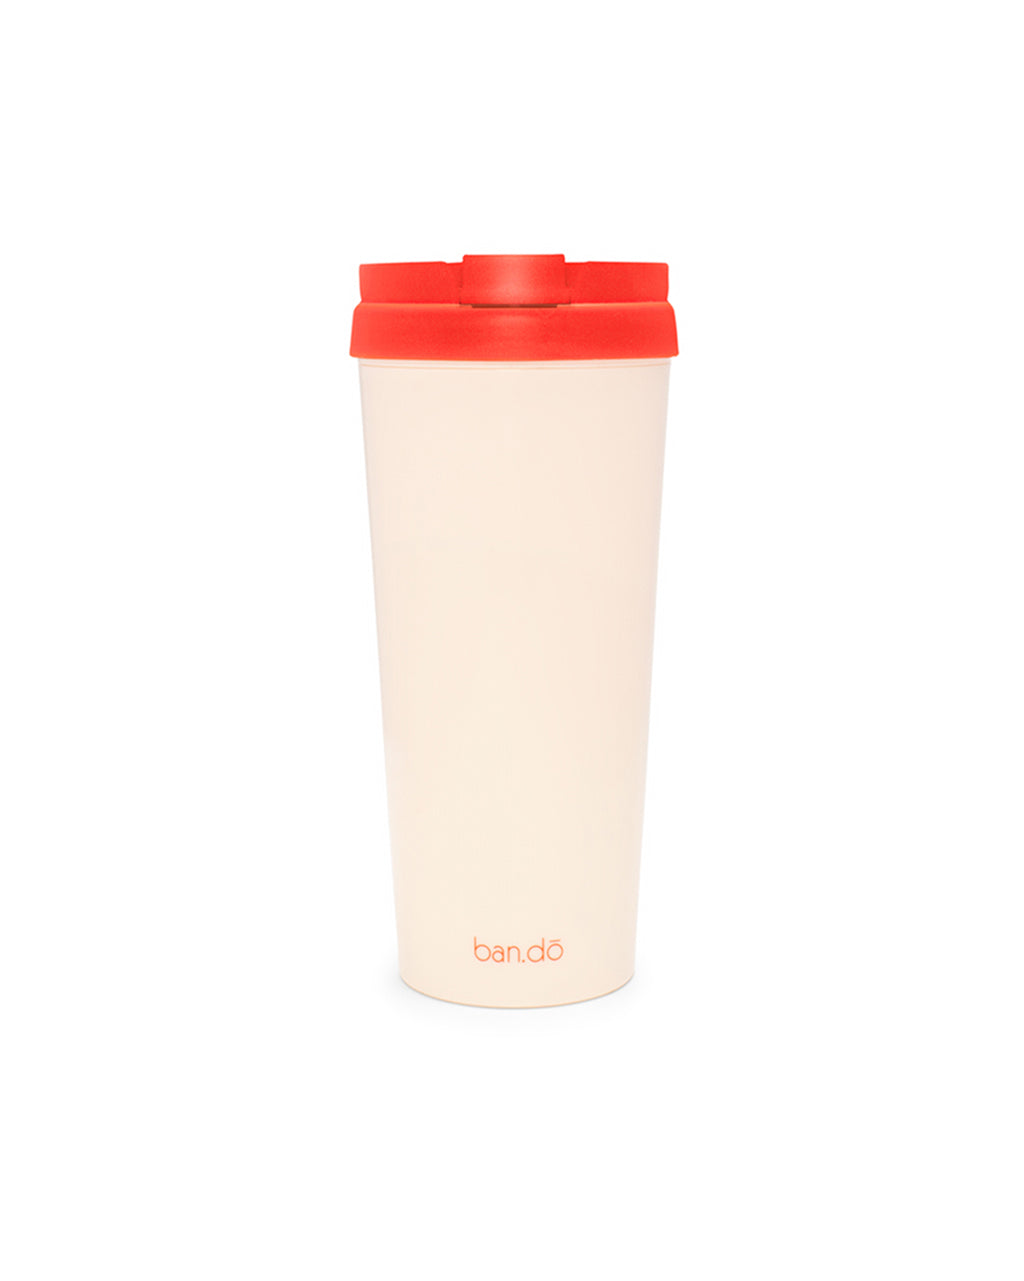 Made of durable infused acrylic (BPA, lead, and phthalate-free).